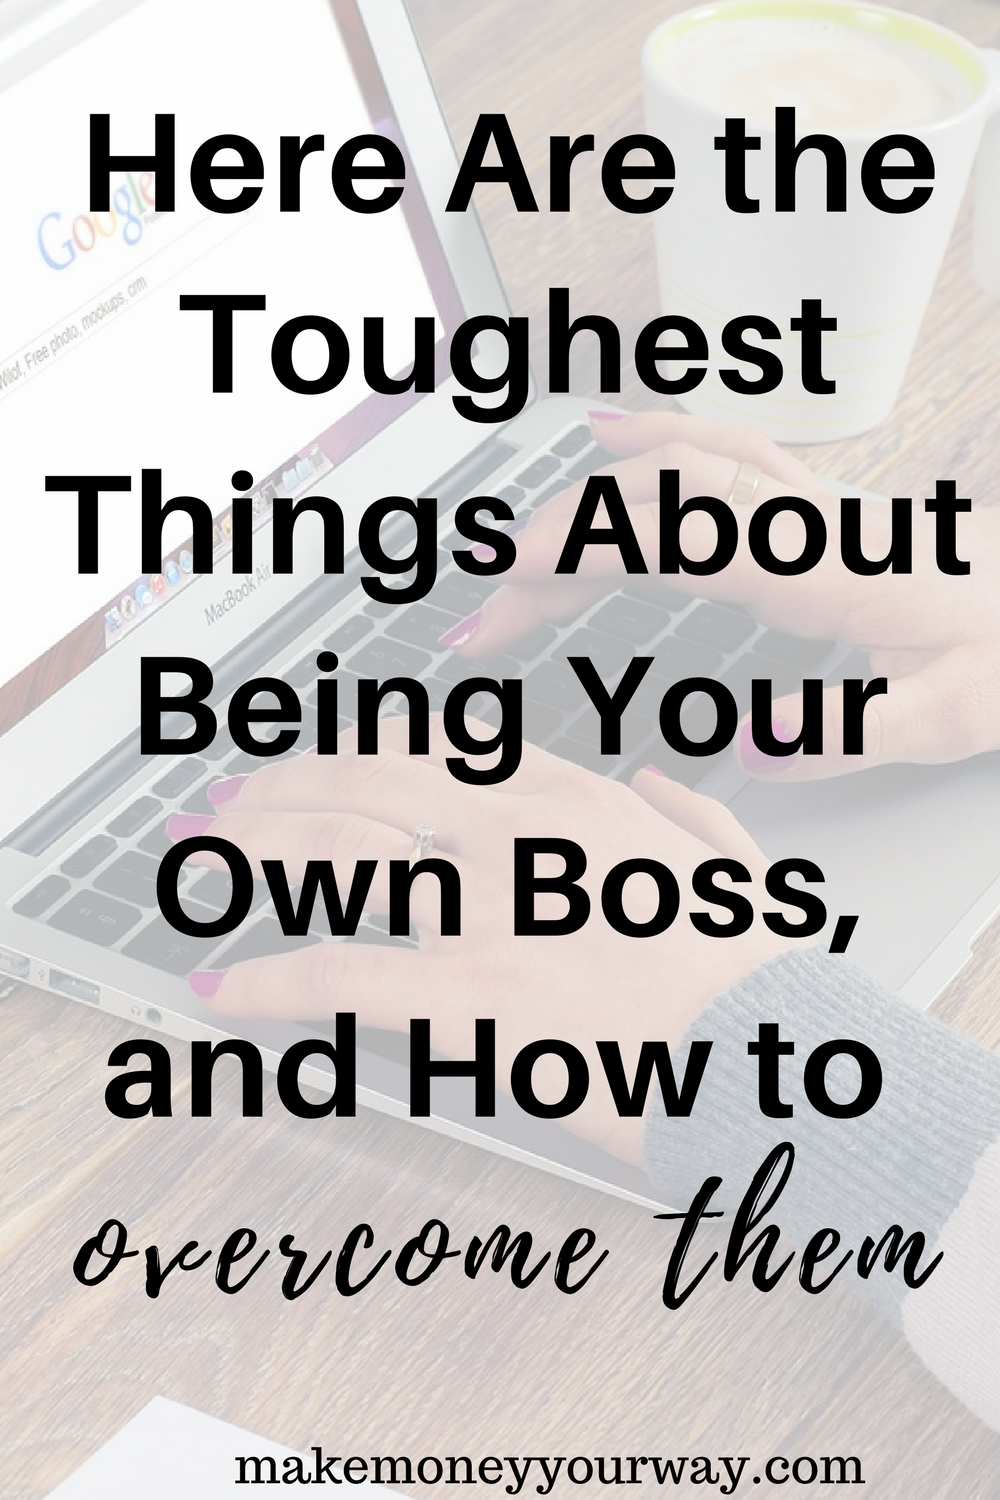 being your own boss essay Check out our top free essays on the advantages and disadvantages of being your own boss to help you write your own essay.